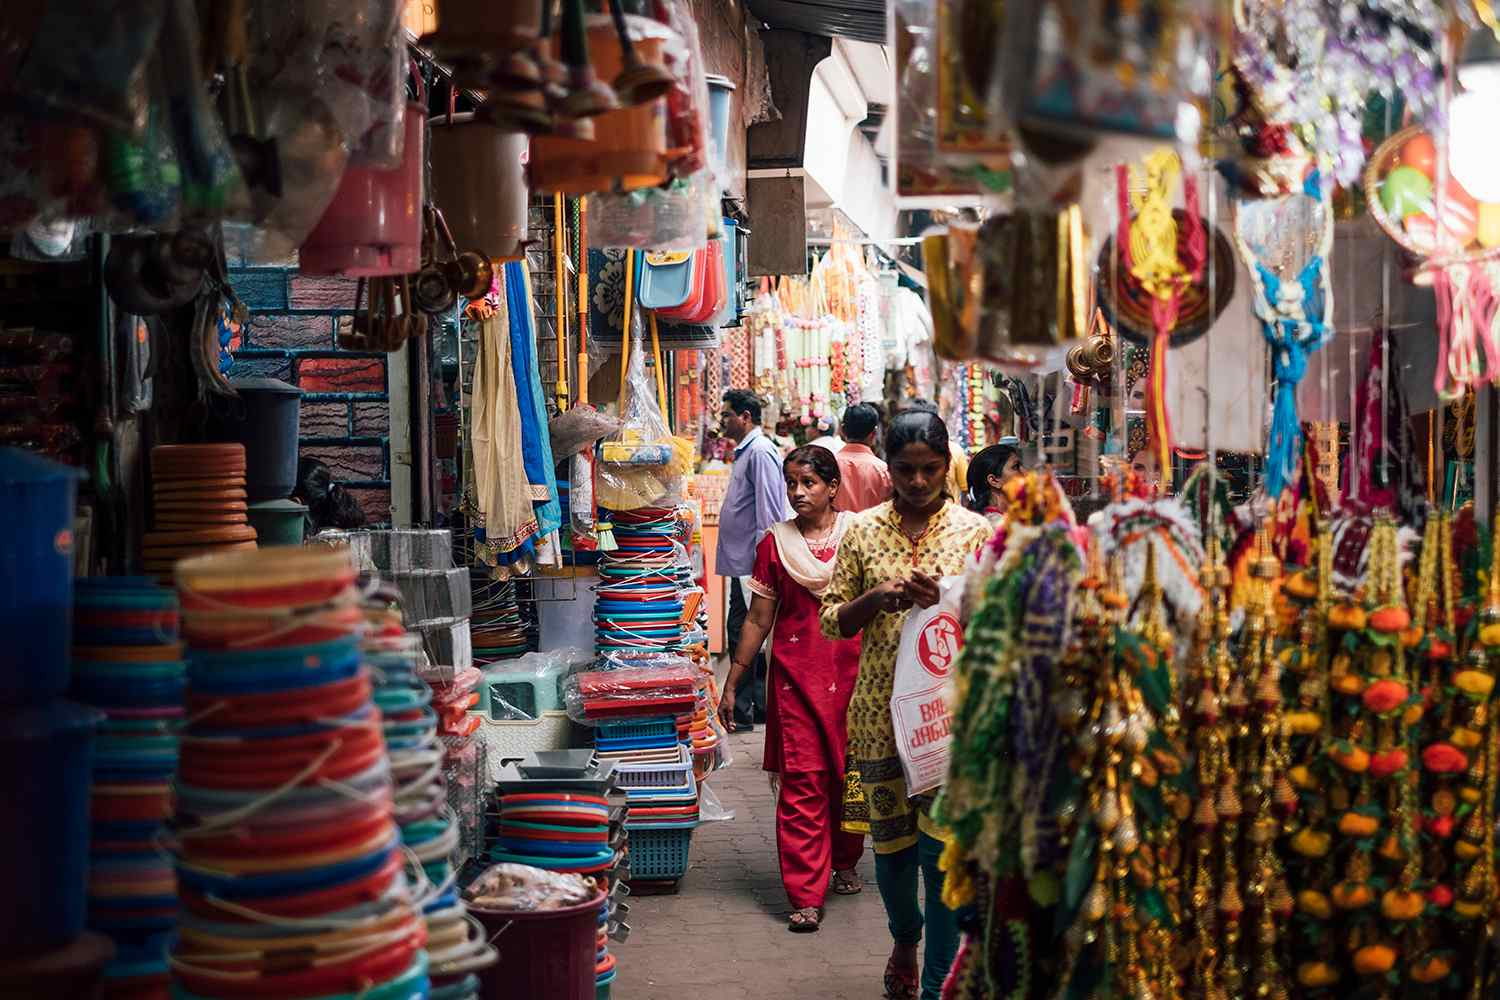 Shoppers in alley in Mumbai, India